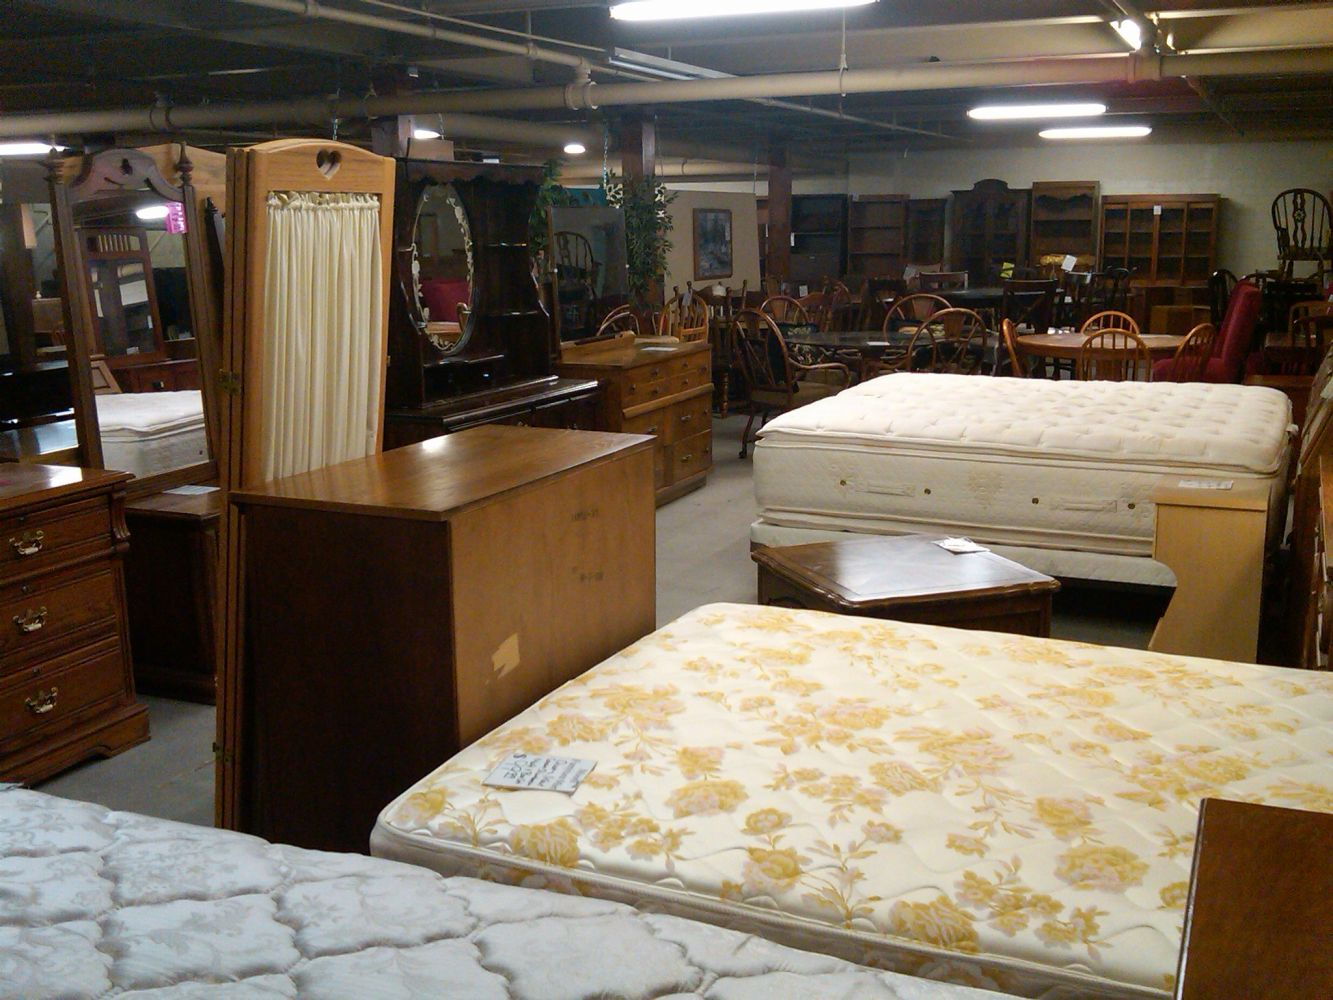 large furniture showroom  in Lincoln, NE